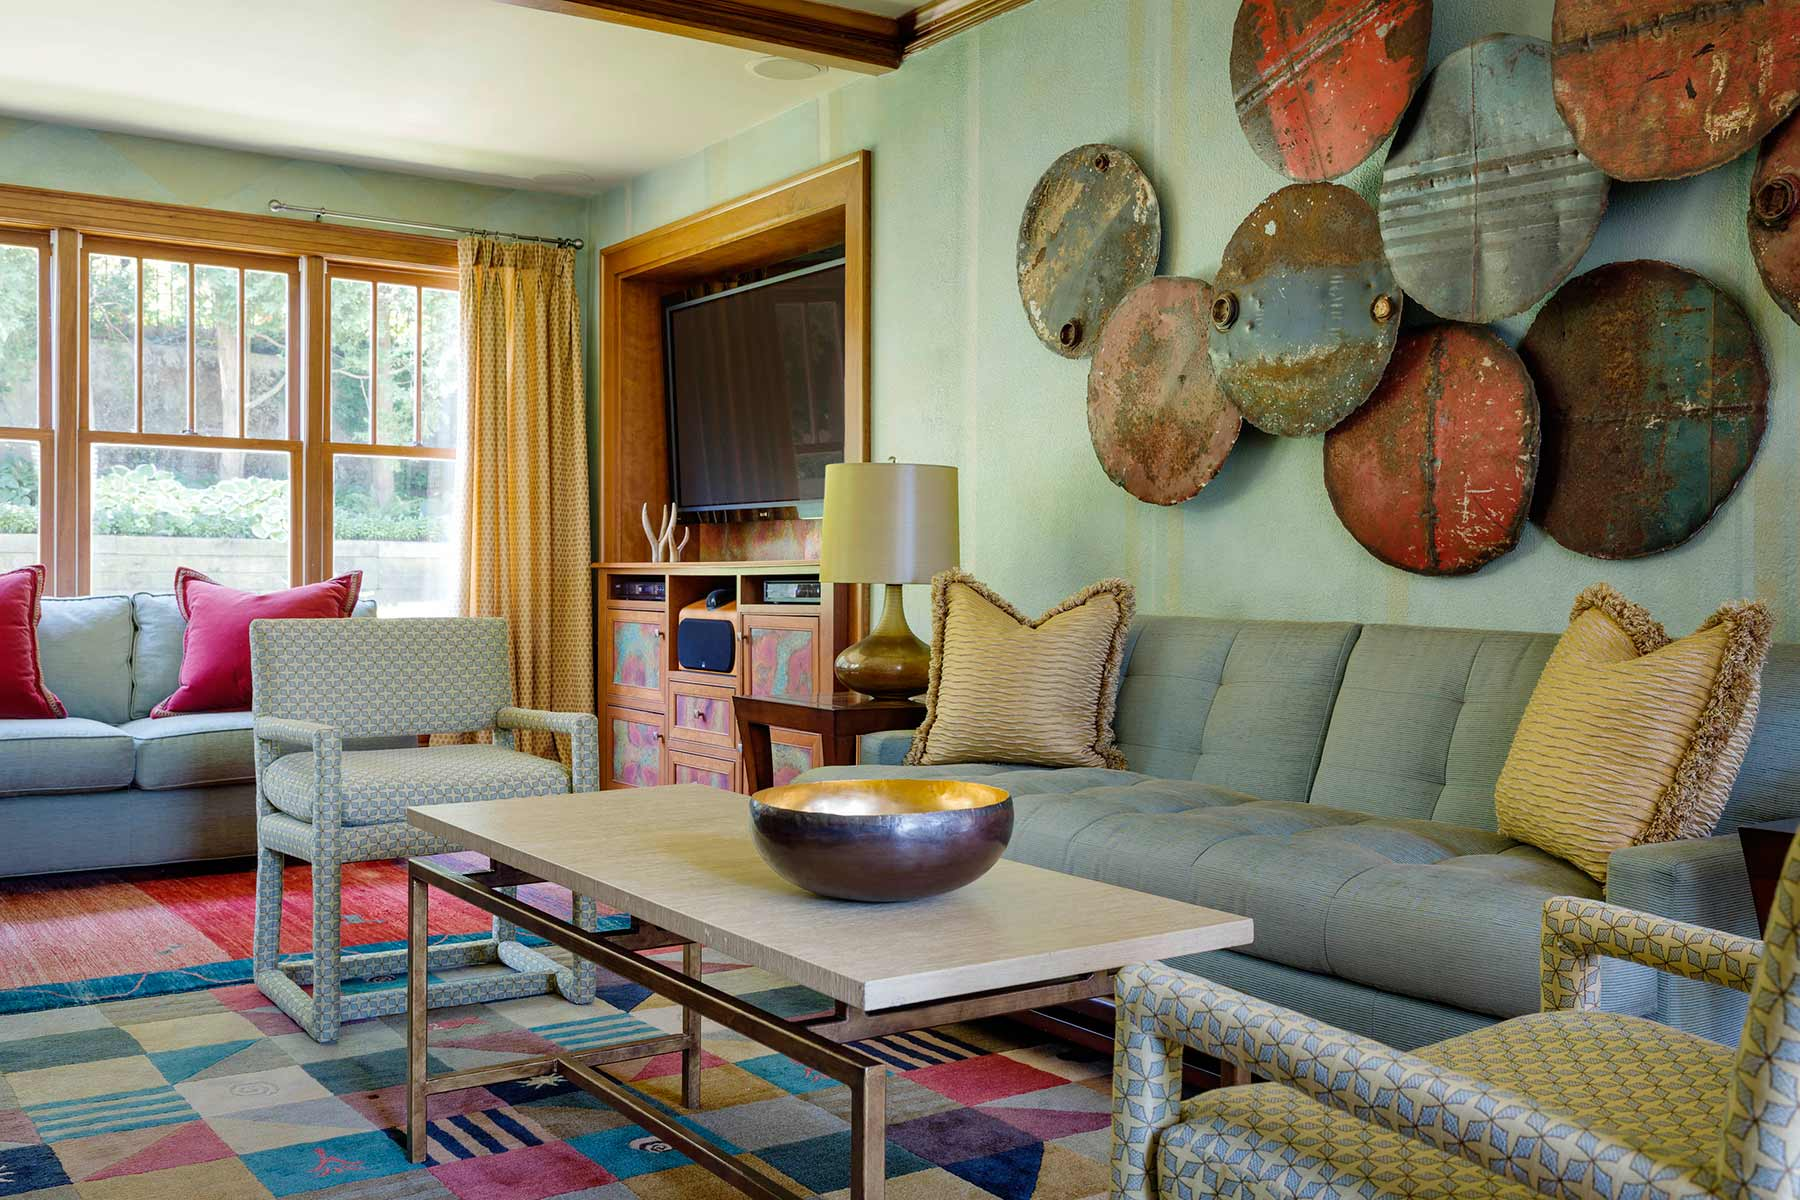 Heather Vaughan Design 273 Auburn St Suite 2 Newton Ma 02466 857 234 1098 Heathervaughandesign